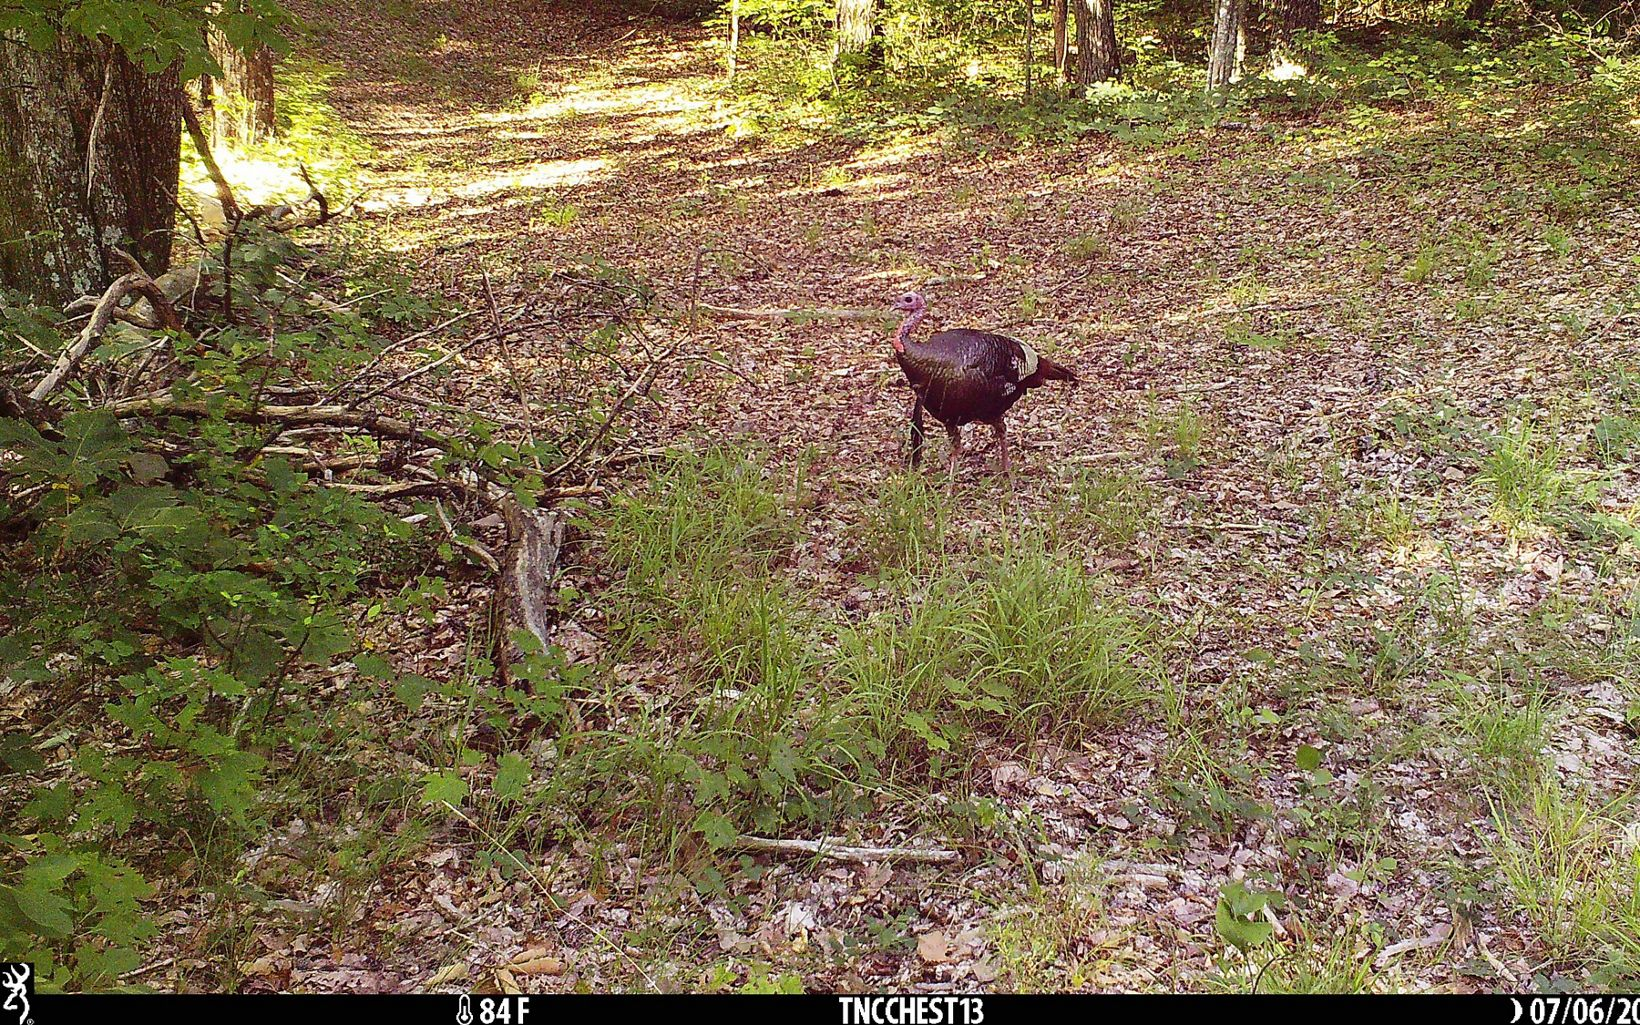 A turkey wanders through the woods.